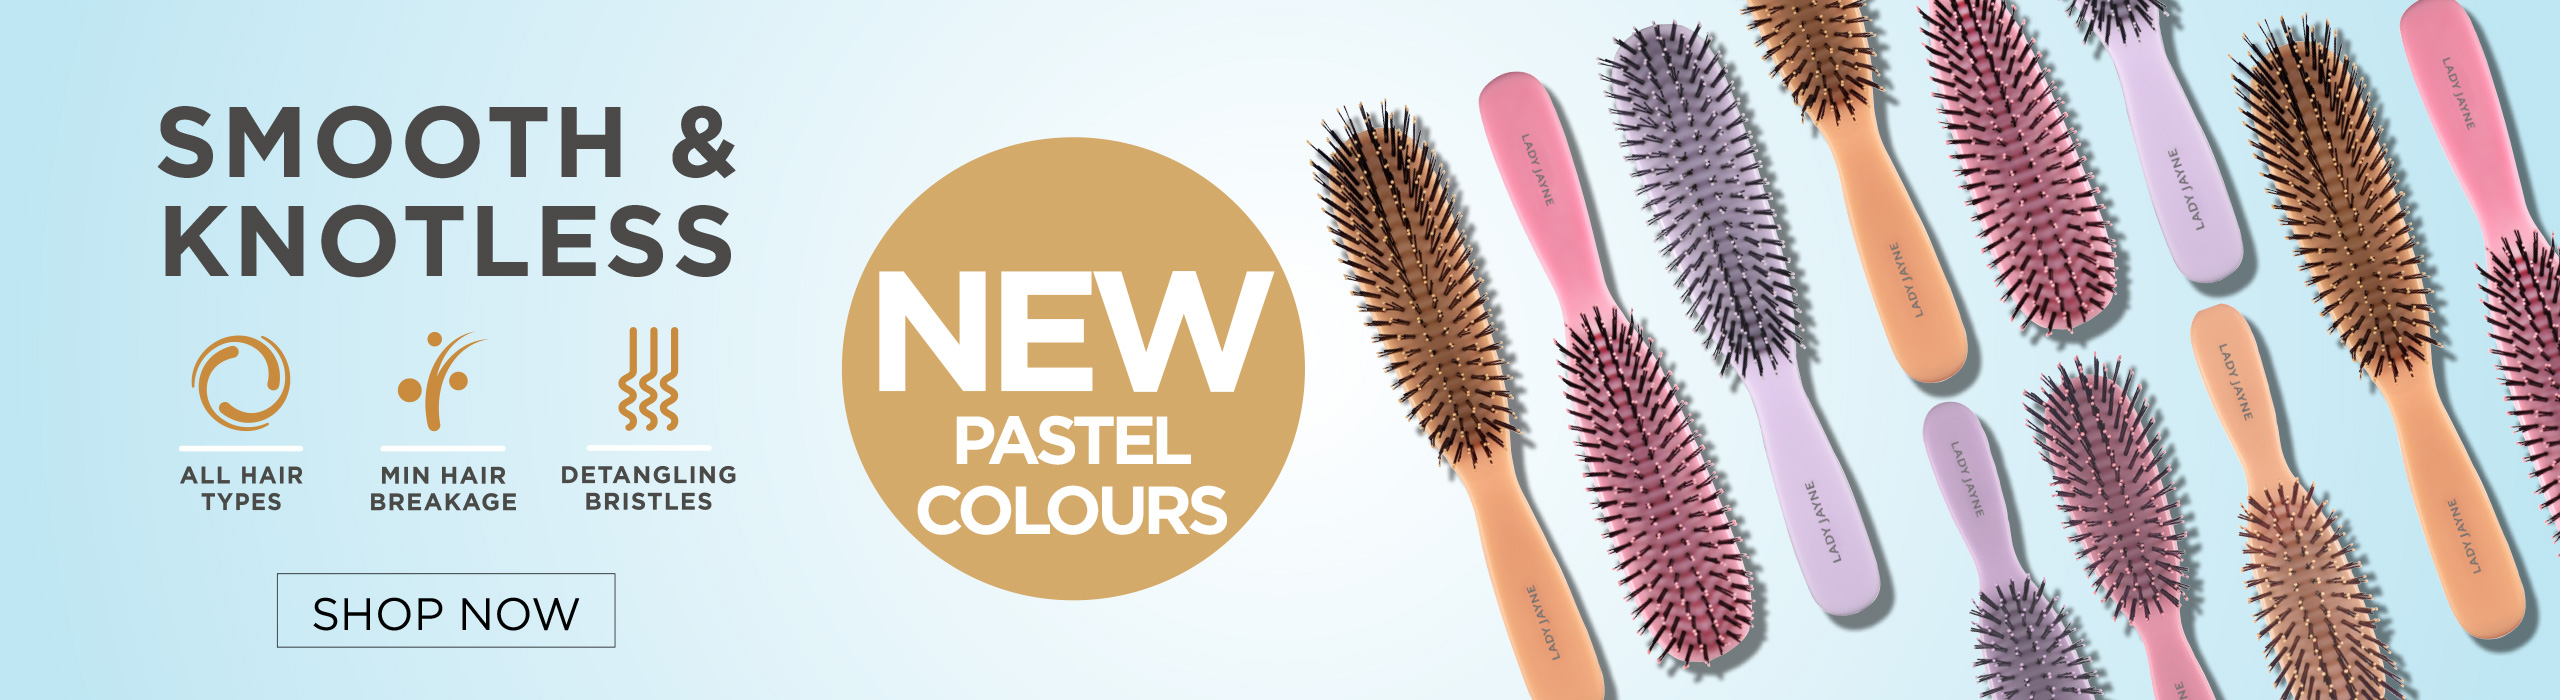 Pastel Smooth & Knotless Brushes